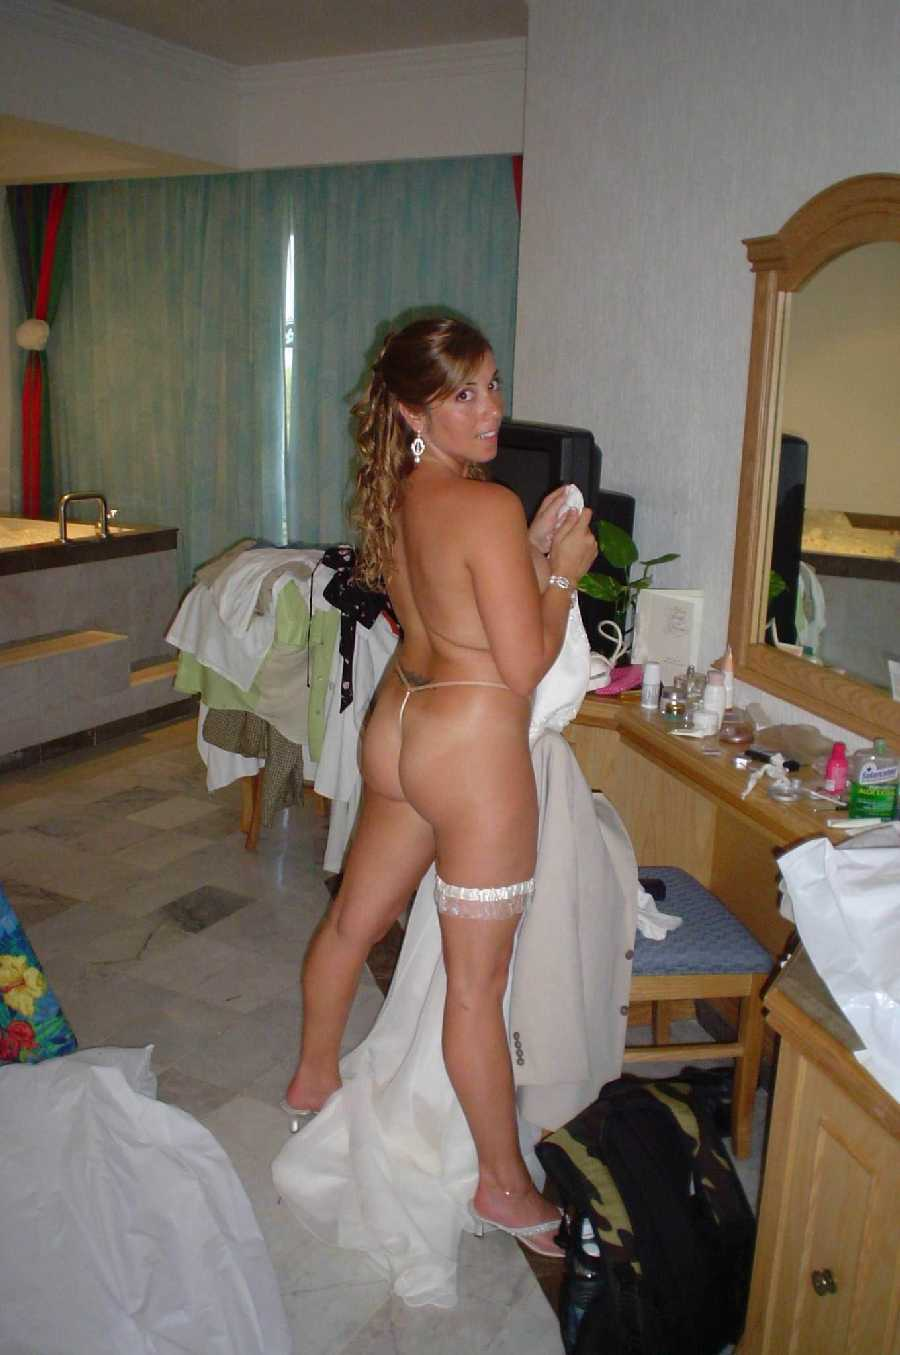 hot brides flashing - amateur girls naked